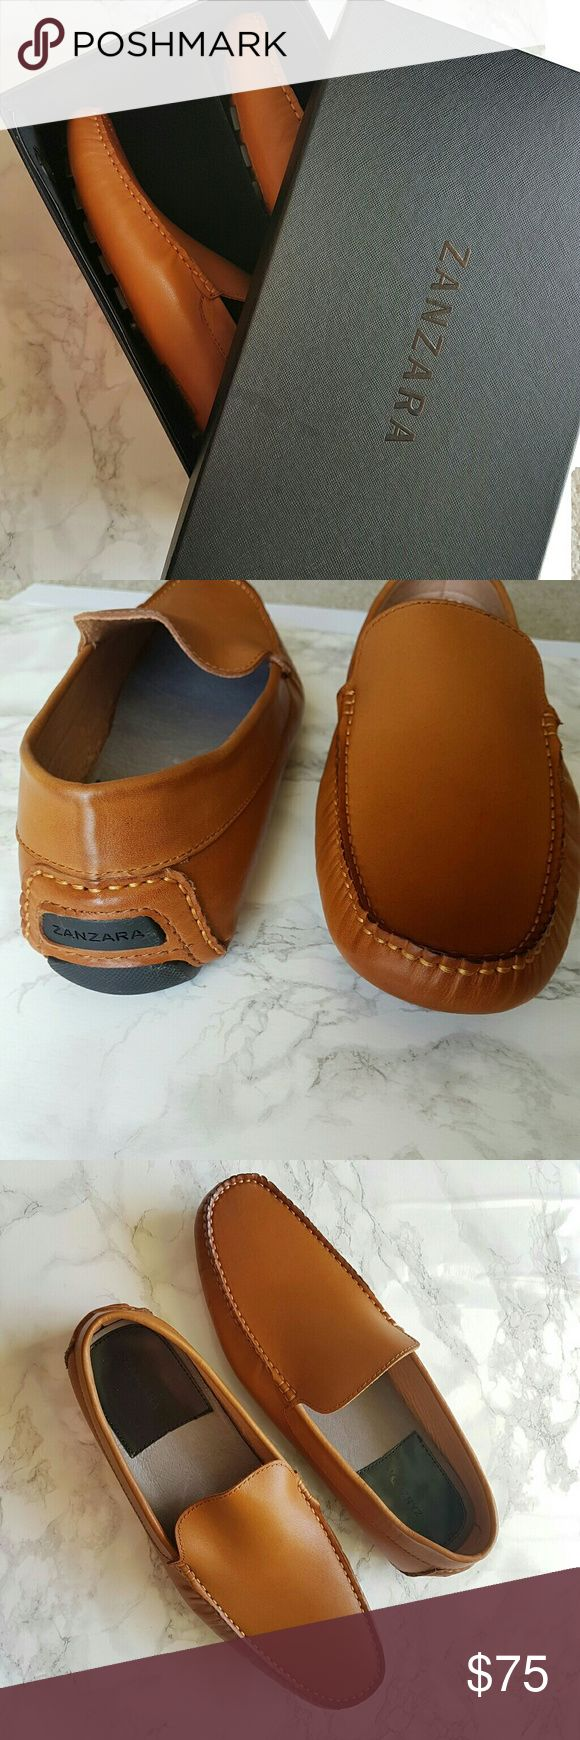 NWT! Zanzara Tan Leather Driver Shoes - Men 🌴 Brand New in Box 🌴 Authentic 🌴 Genuine Leather Shoes Loafers & Slip-Ons